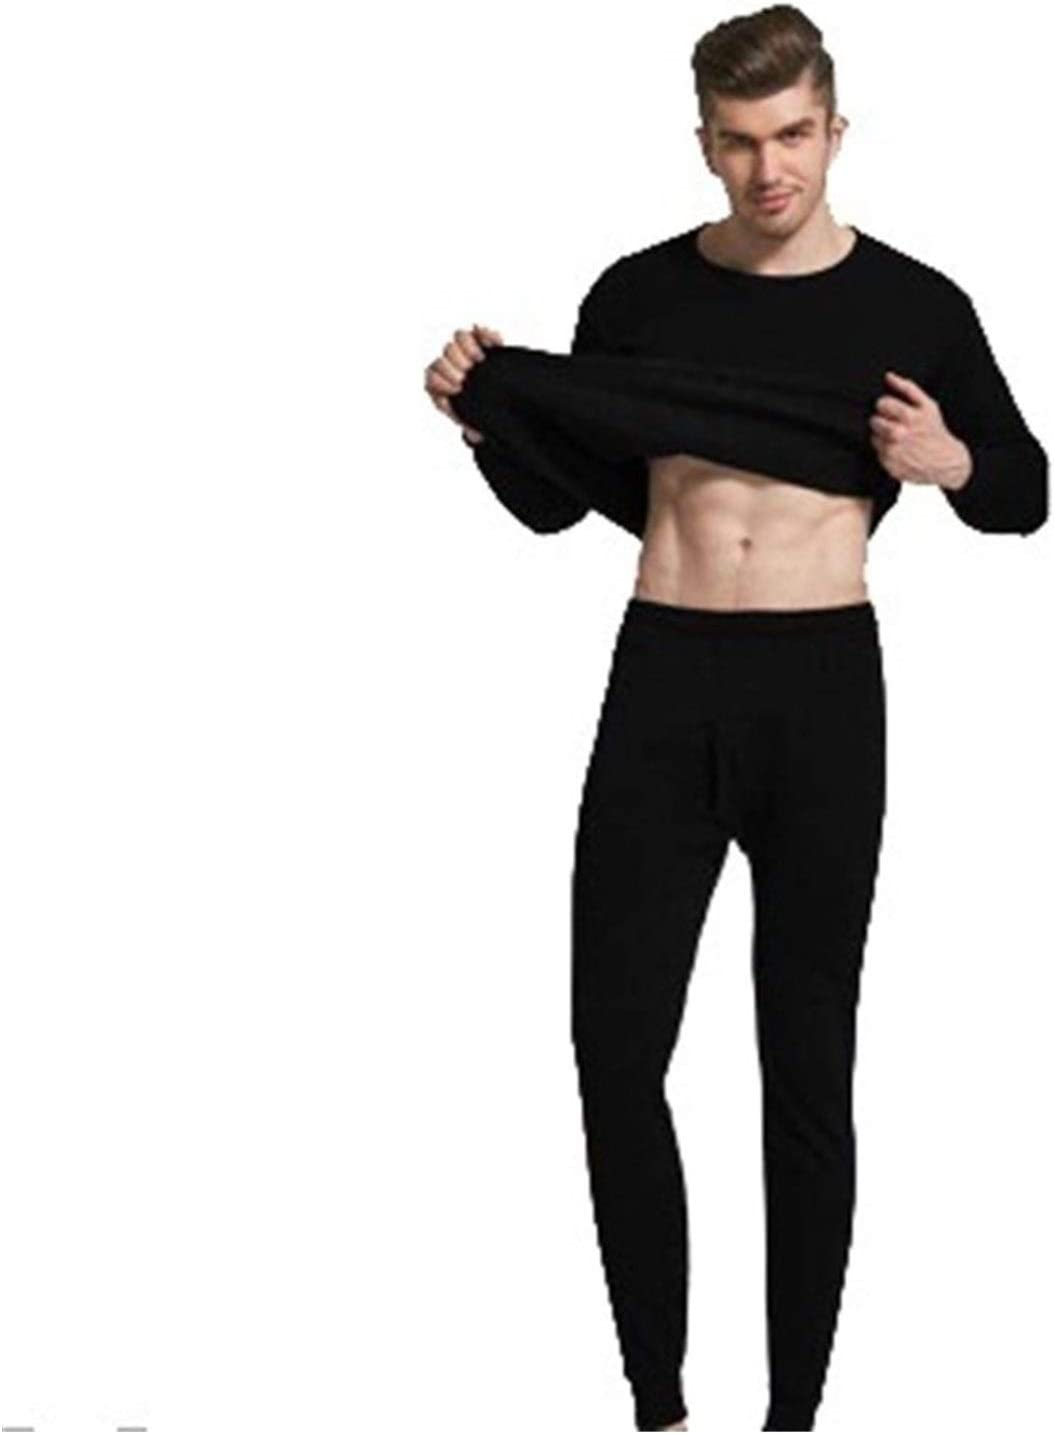 QWERBAM Winter Long Men Thermal Underwear Sets Keep Warm for Men Thick Thermal Clothing Solid (Color : NY001 Black, Size : X-Large)